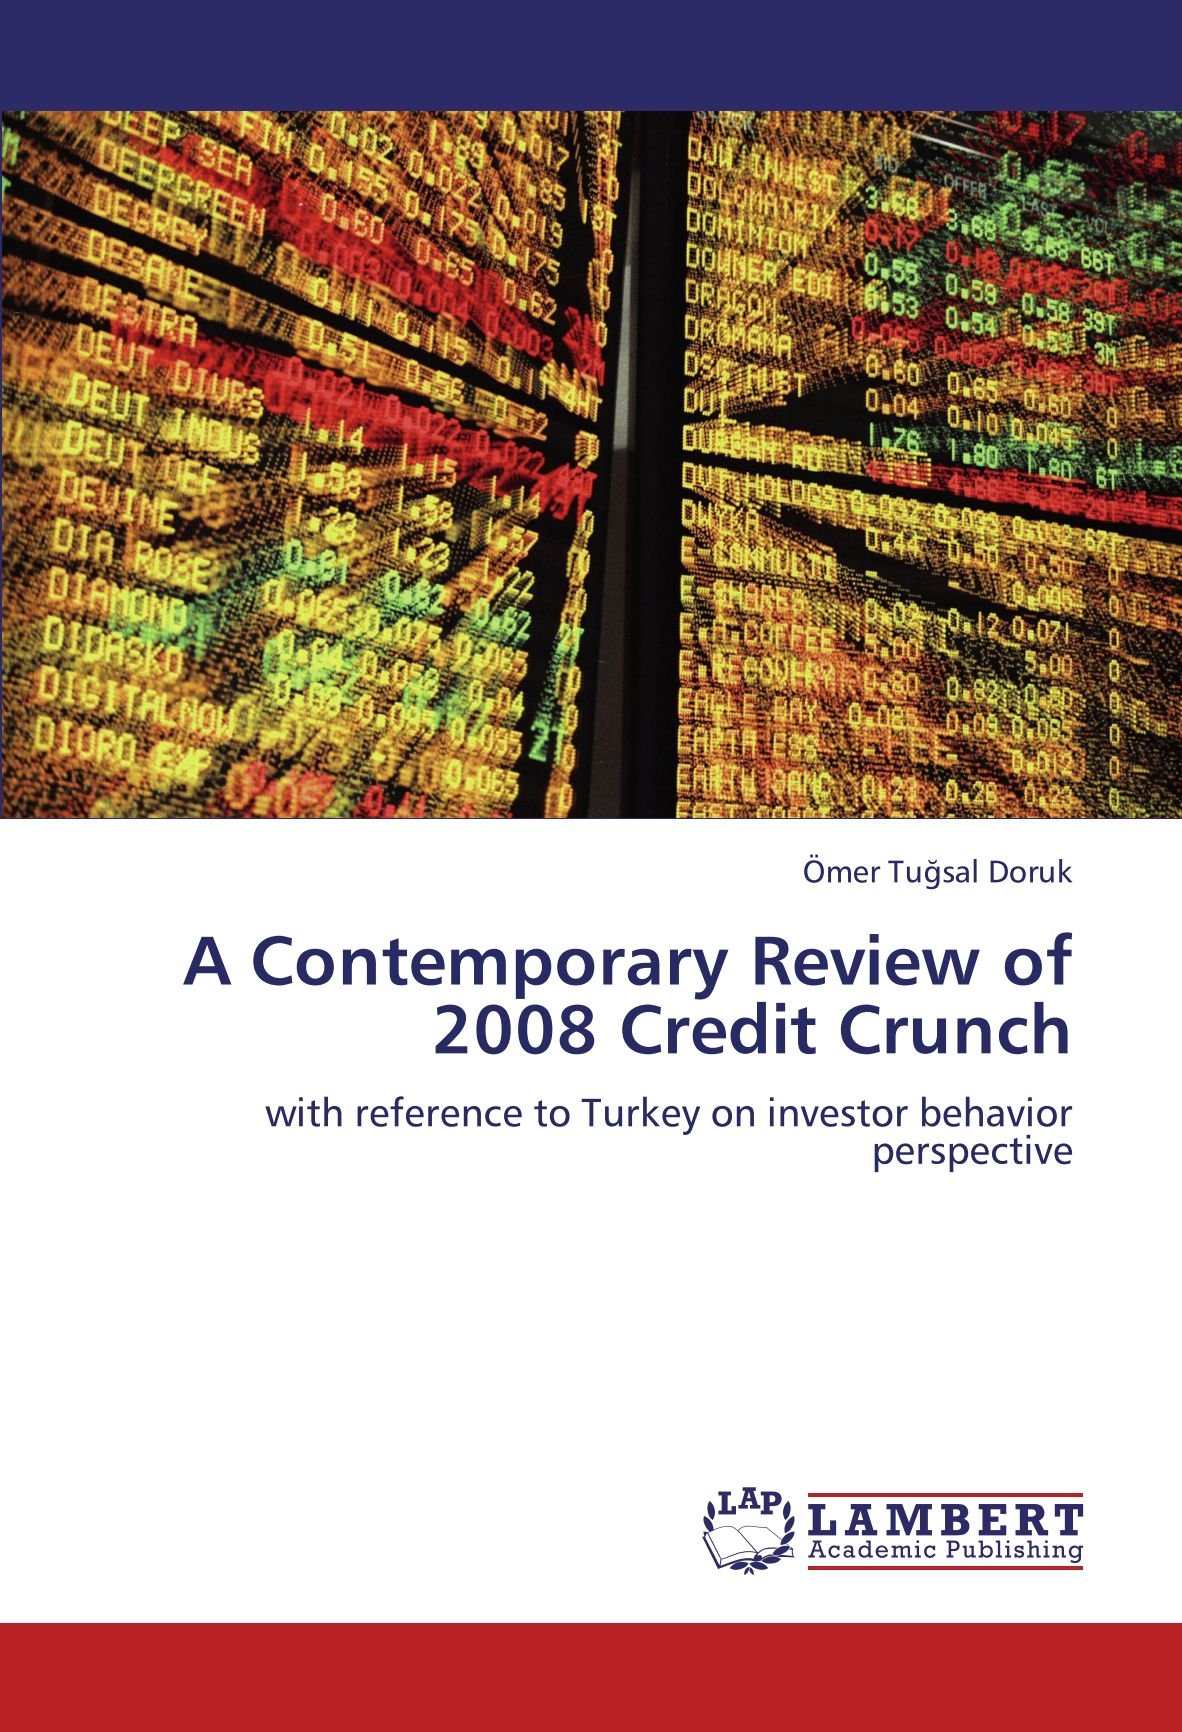 Download A Contemporary Review of 2008 Credit Crunch: with reference to Turkey on investor behavior perspective ebook